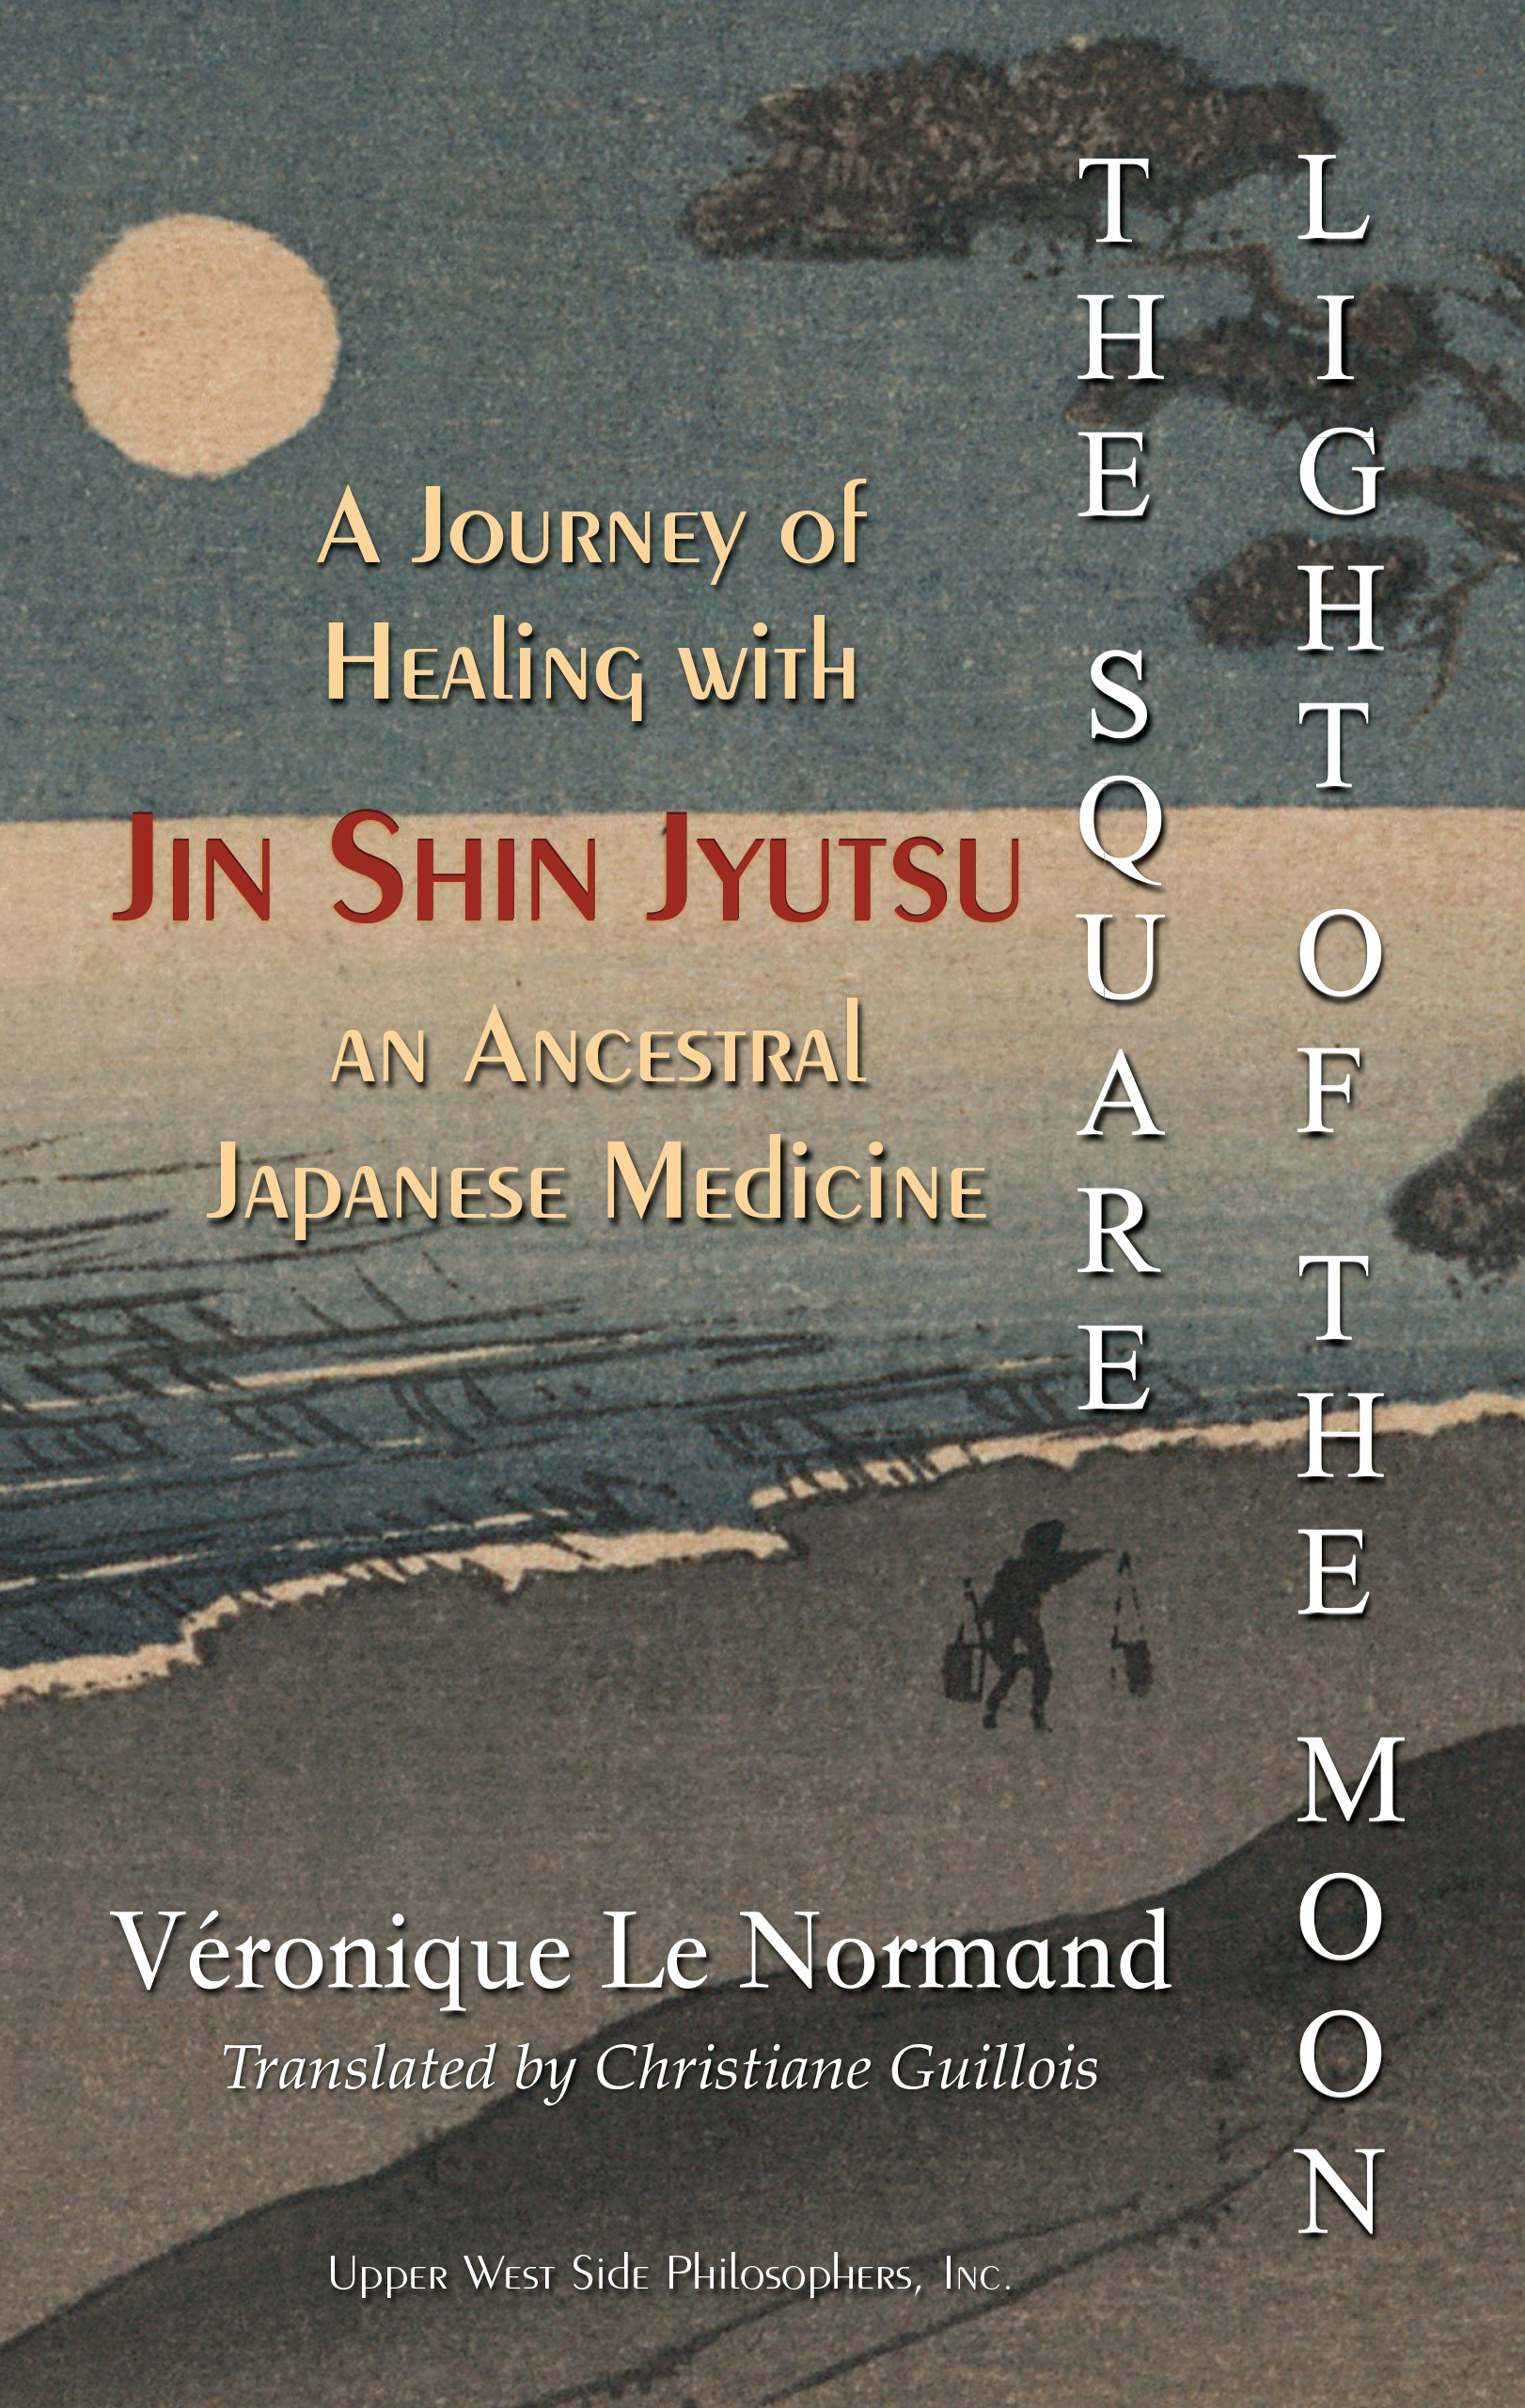 The Square Light of the Moon: A Journey of Healing with Jin Shin Jyutsu – An Ancestral Japanese Medicine